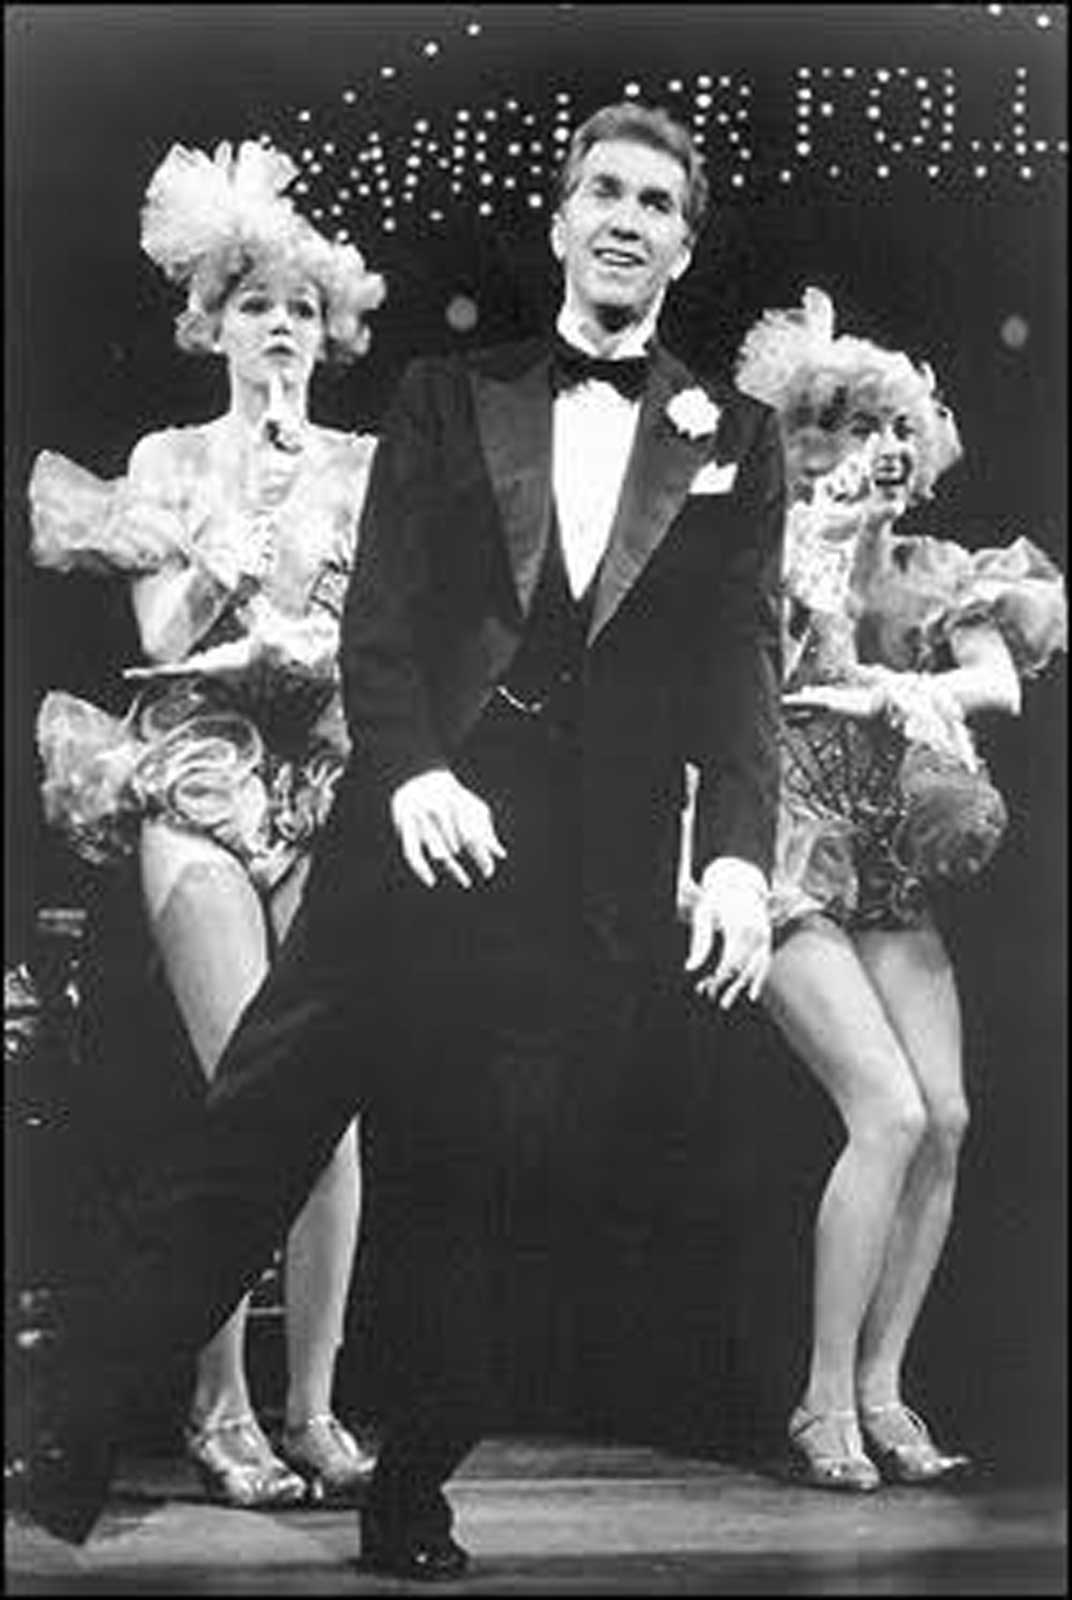 Black and white photo of Harry Groener (in a tux, tap dancing and leaning sideways) with Penny Ayn Maas and Paula Leggett (also tap dancing in frilly pink costumes).